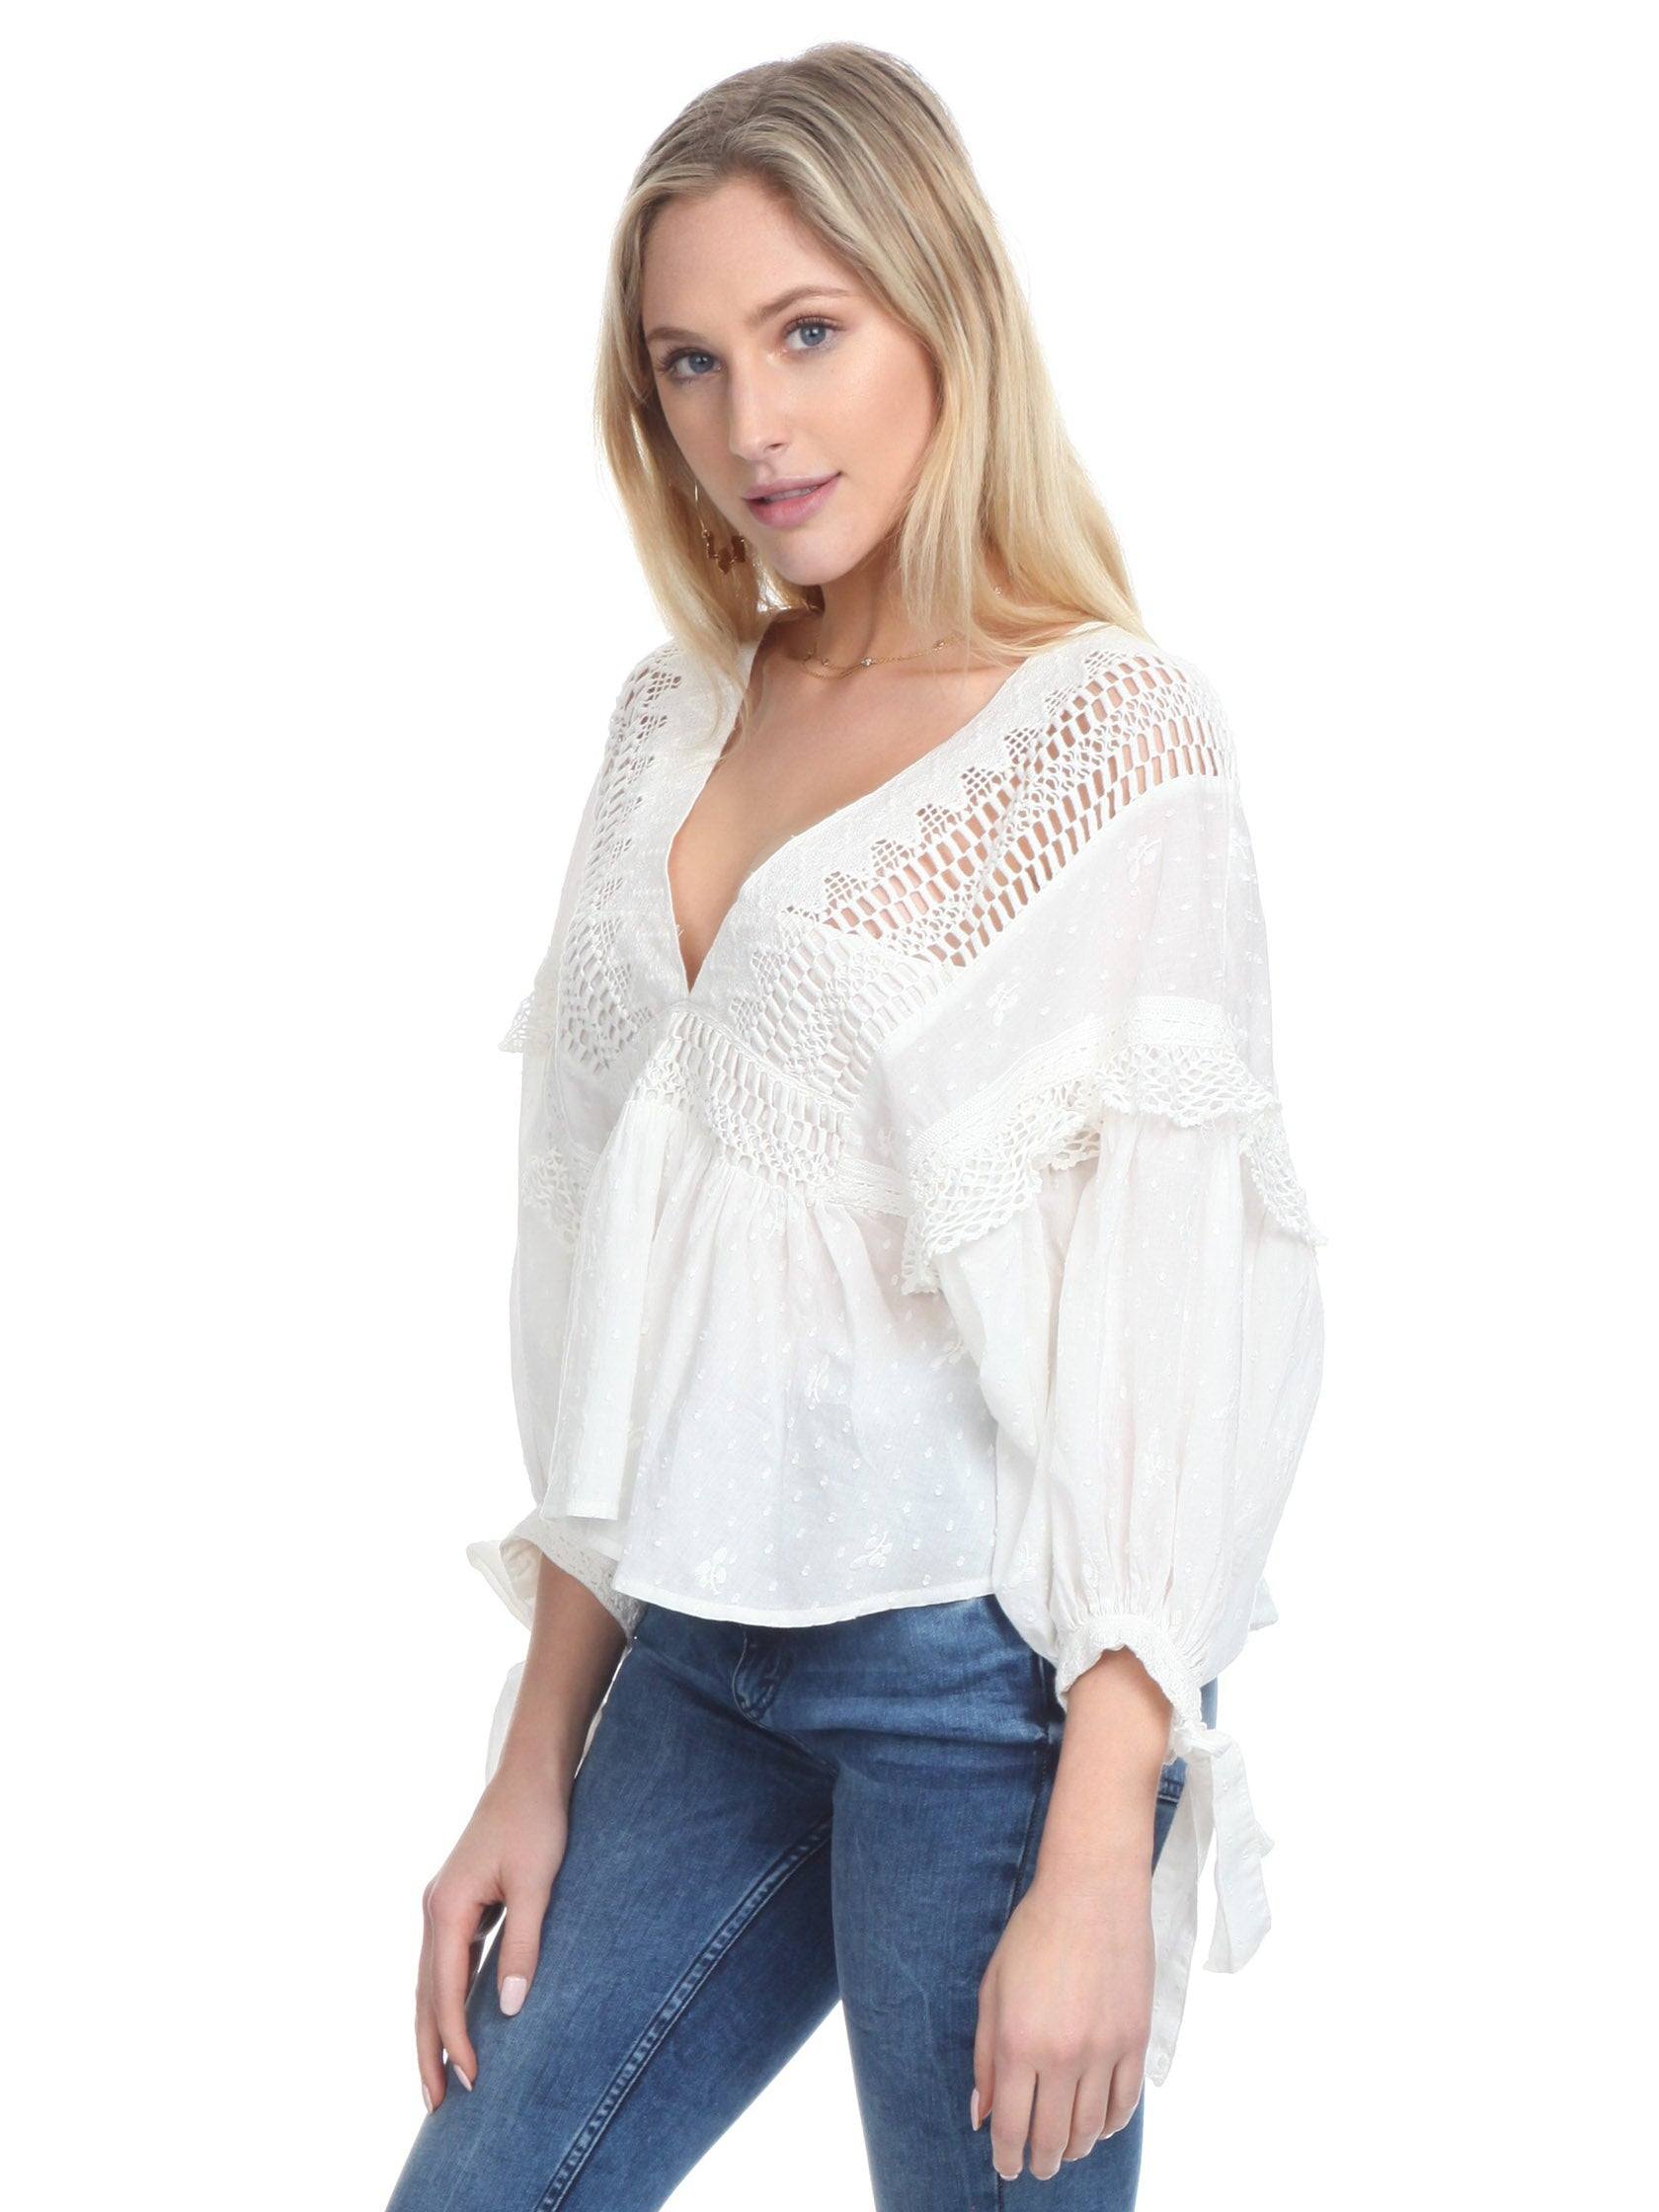 Women wearing a top rental from Free People called Drive You Mad Blouse